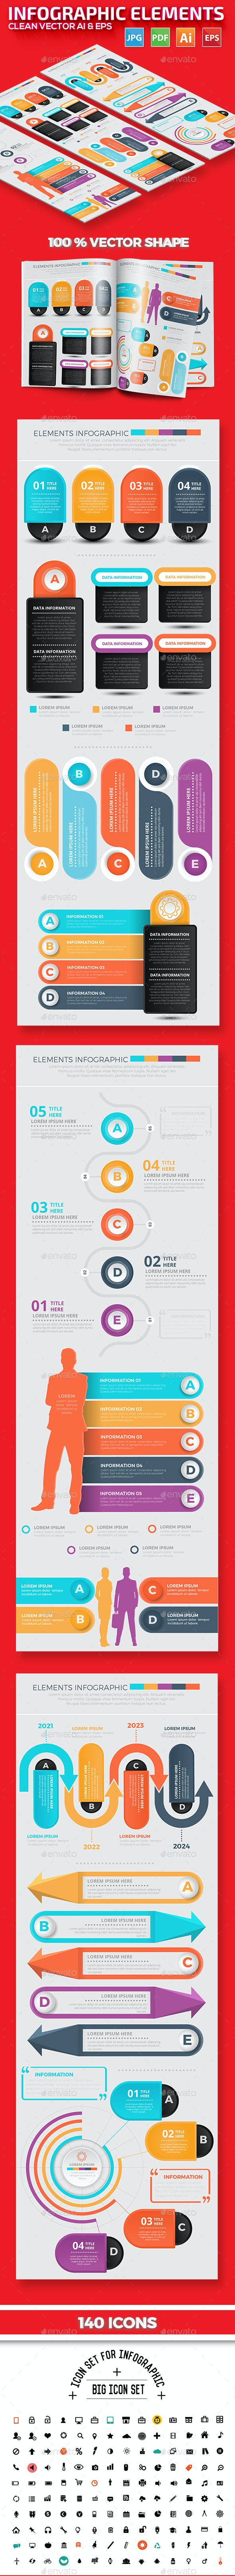 Infographic Elements Design - Infographics